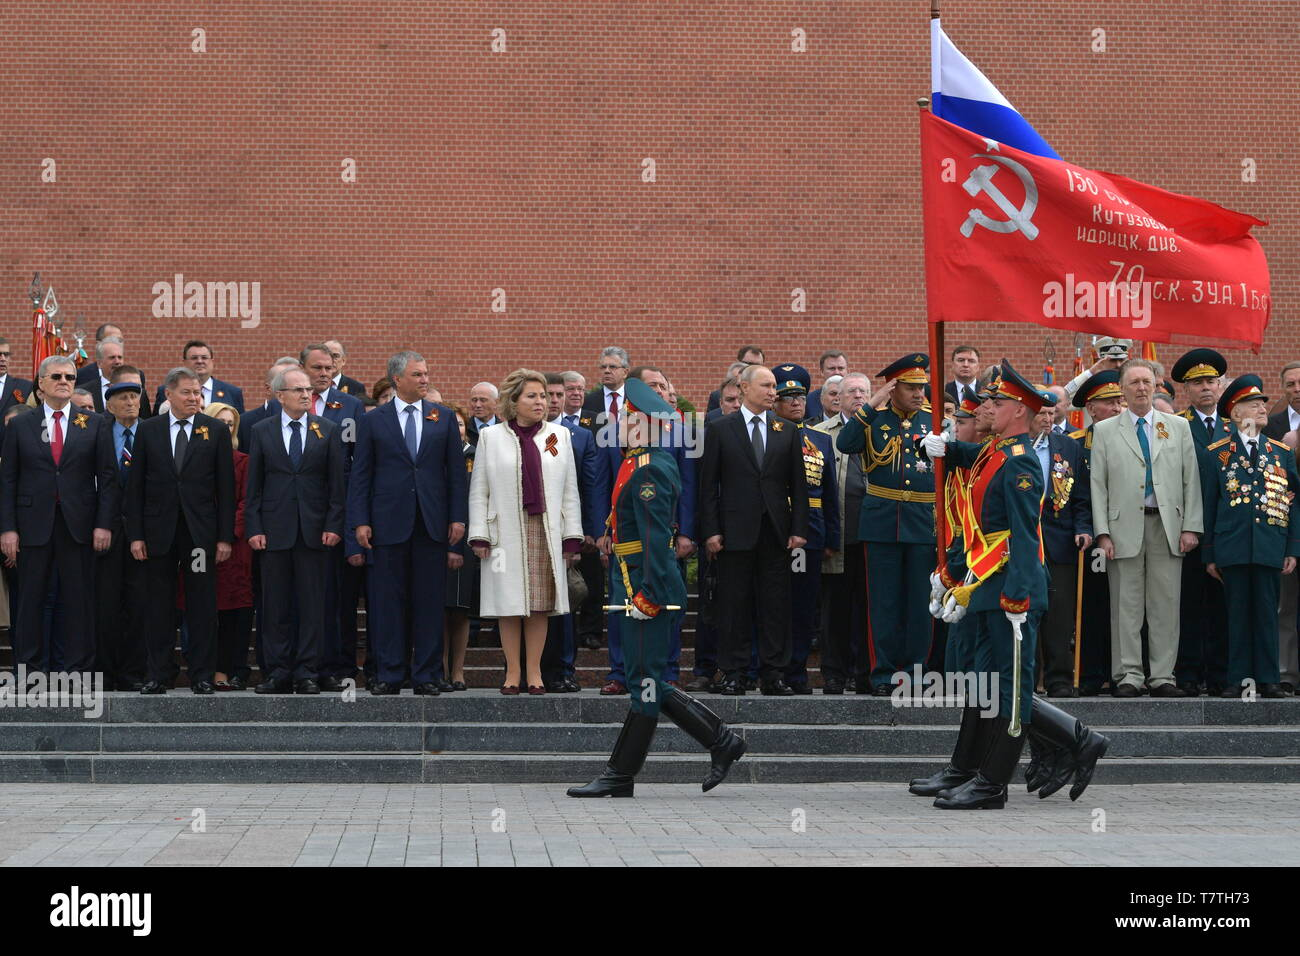 MOSCOW, RUSSIA - MAY 9, 2019: Russian Prosecutor General Yuri Chaika, Russian Supreme Court Chairman Vyacheslav Lebedev, Russian Constitutional Court Chairman Valery Zorkin, Russian State Duma Chairman Vyacheslav Volodin, Russian Federation Council Chairwoman Valentina Matviyenko, Russia's Prime Minister Dmitry Medvedev, Russia's President Vladimir Putin, Russia's Defence Minister Sergei Shoigu (L-R back) during a ceremony to lay flowers at the Tomb of the Unknown Soldier by the Kremlin Wall during celebrations marking the 74th anniversary of the victory of the Soviet Red Army over Nazi German - Stock Image